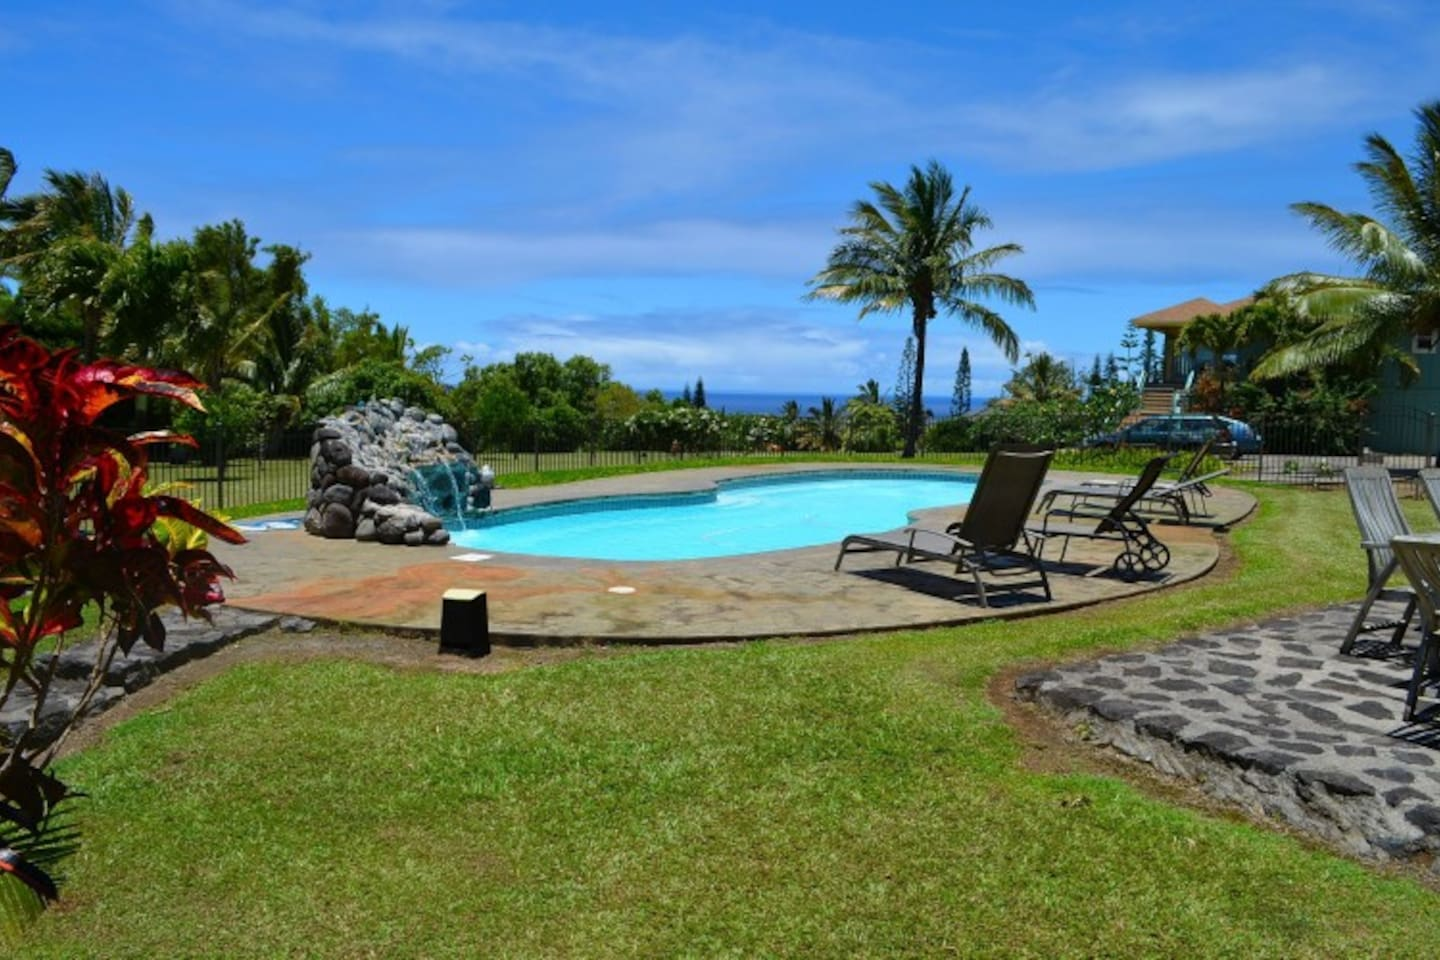 40 foot saltwater pool at Maui Ocean Breezes